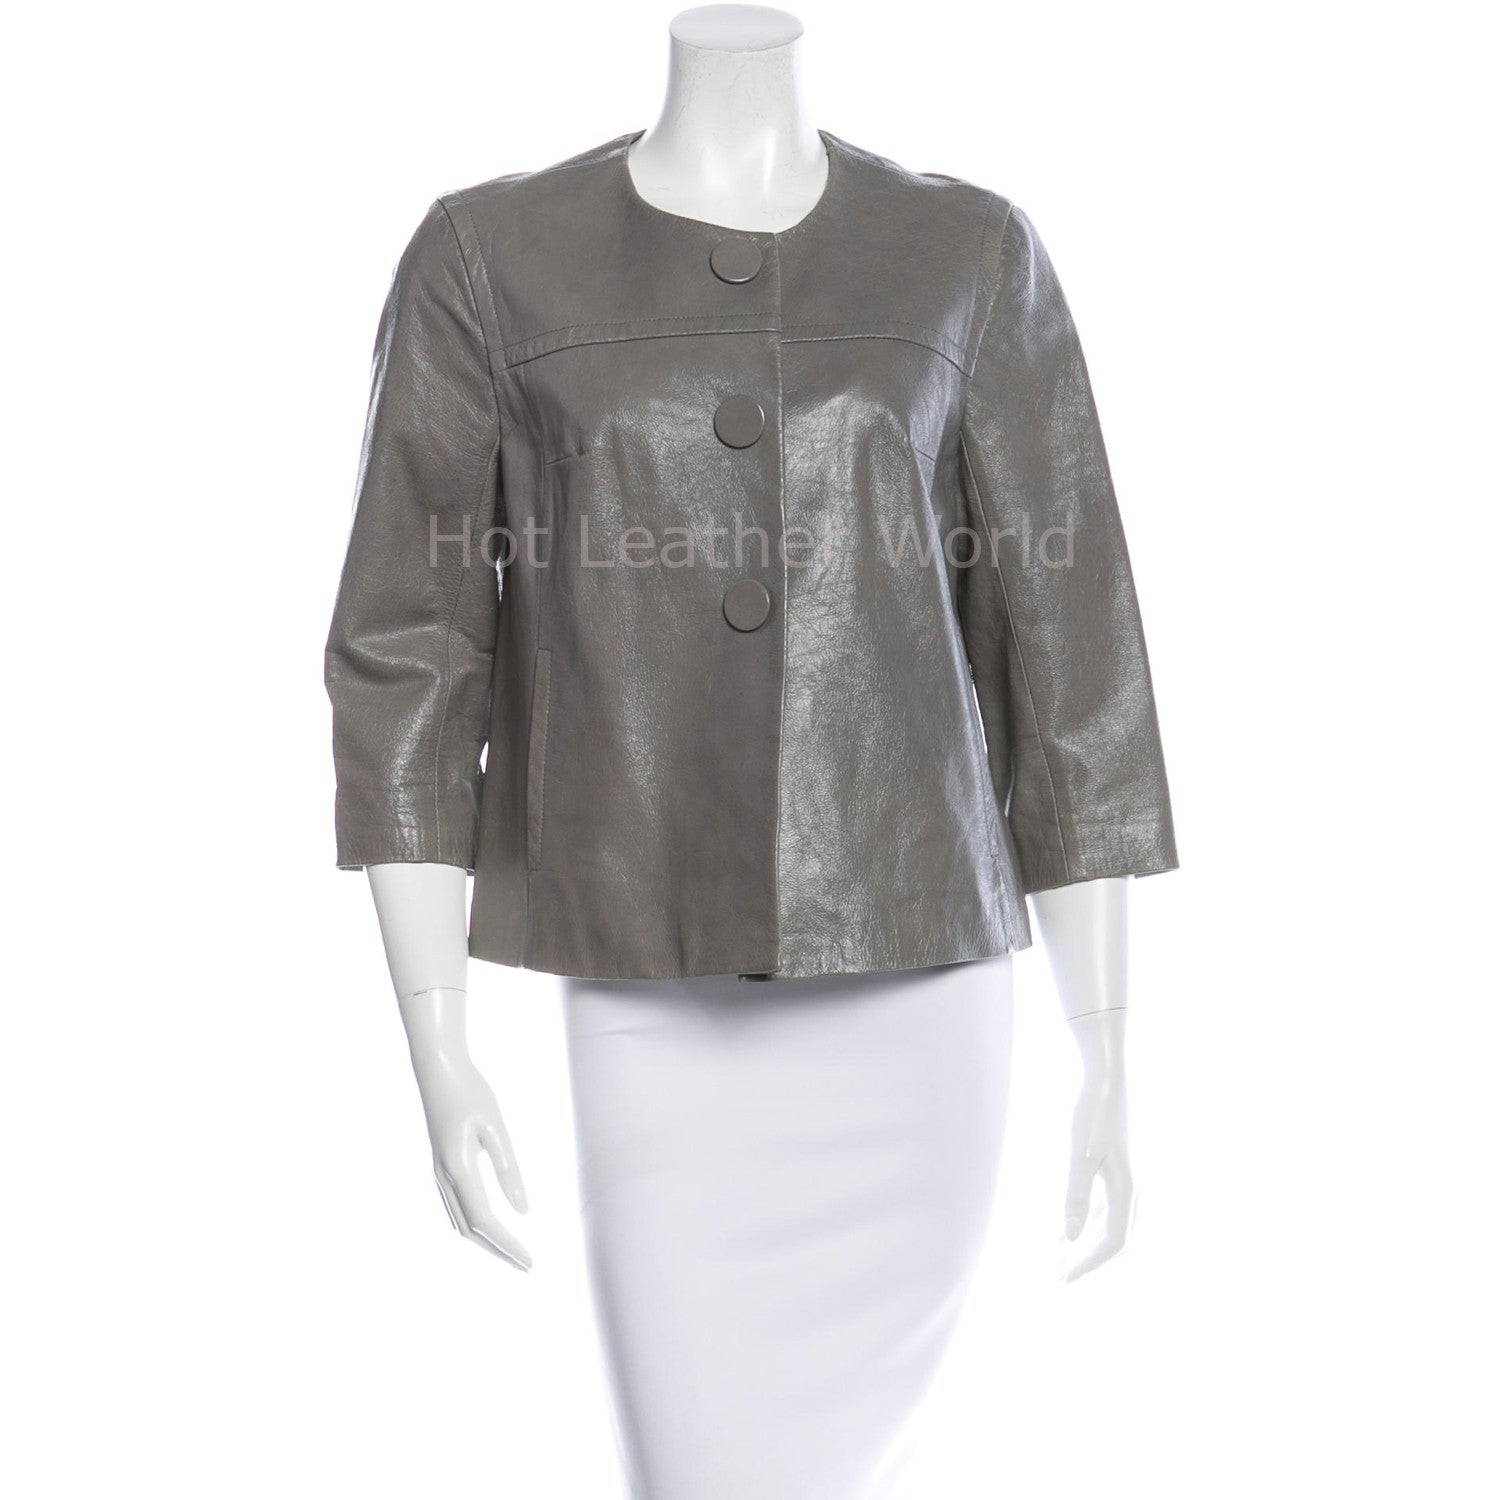 Collarless Women Leather Winter Top -  HOTLEATHERWORLD